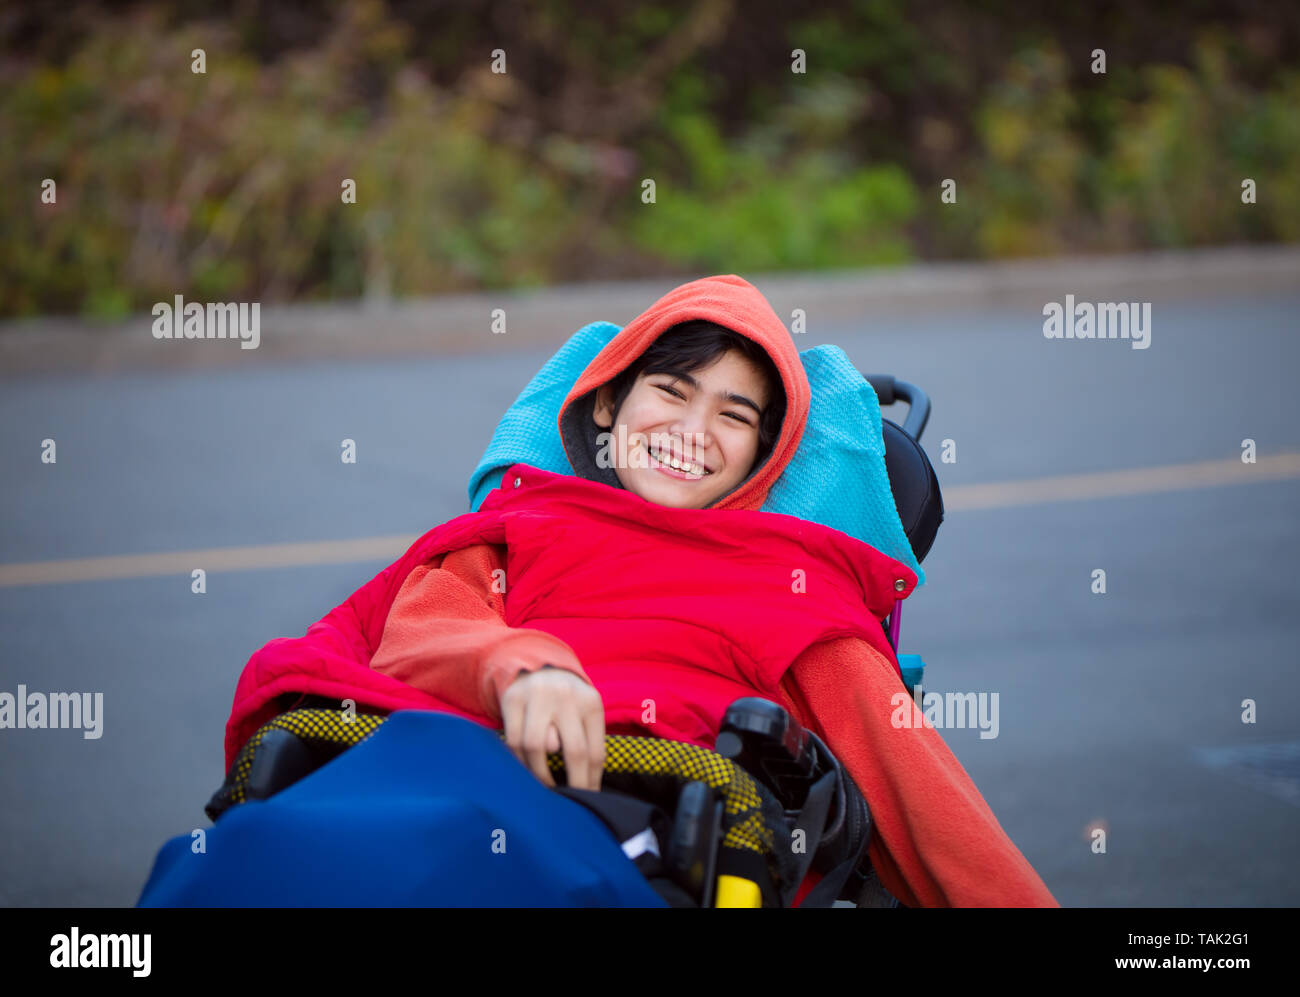 Smiling twelve year old special needs biracial boy in wheelchair outdoors on the road in cold weather wearing sweater and vest - Stock Image